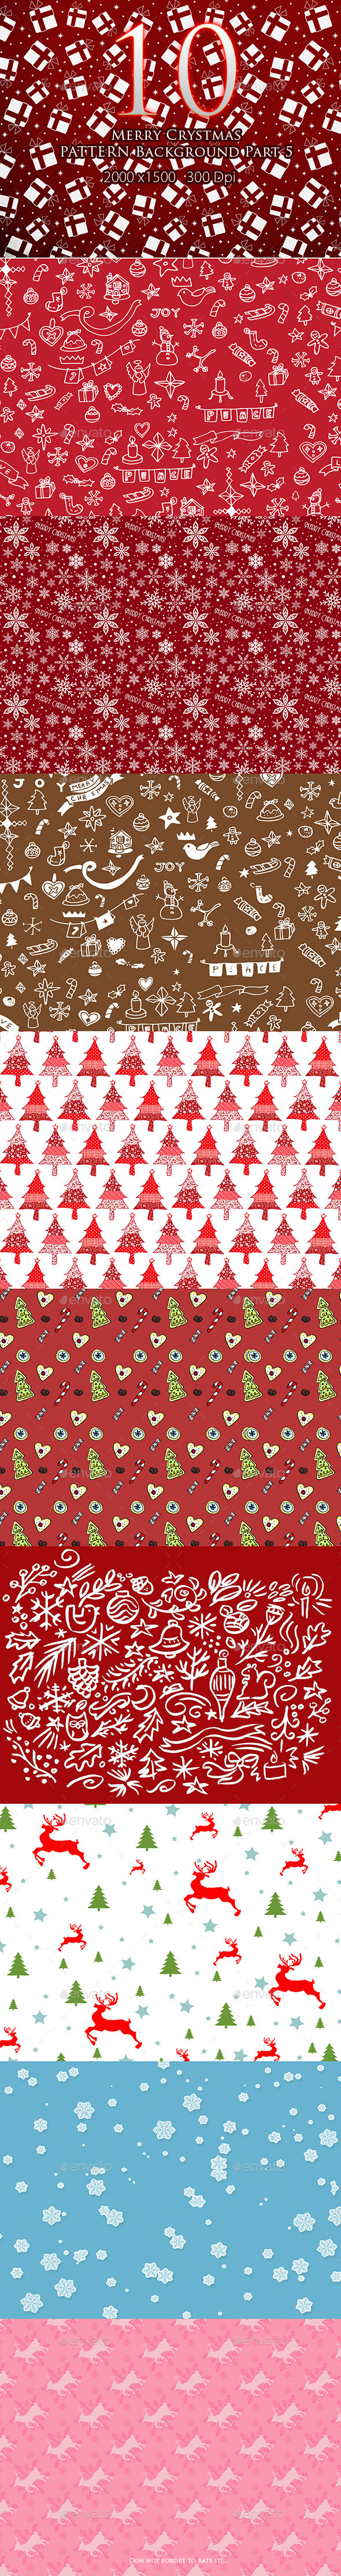 10 Merry Christmas Pattern Background Part 5 - Patterns Backgrounds